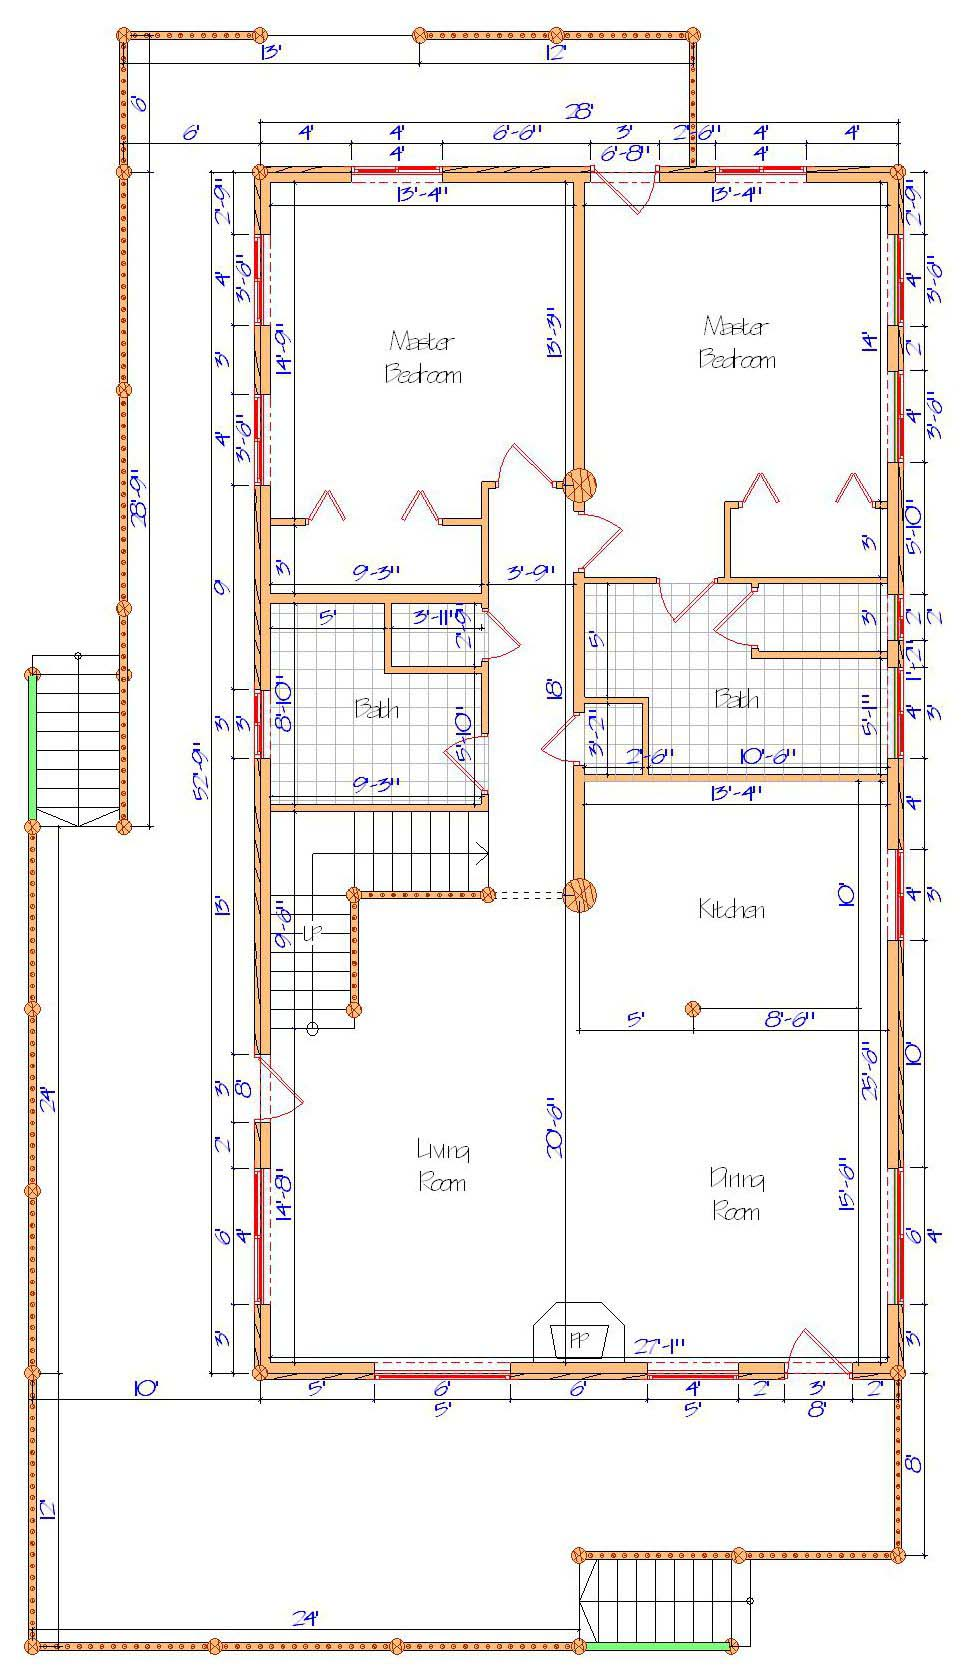 28x52-9 Adirondack Main floor layout framed log home